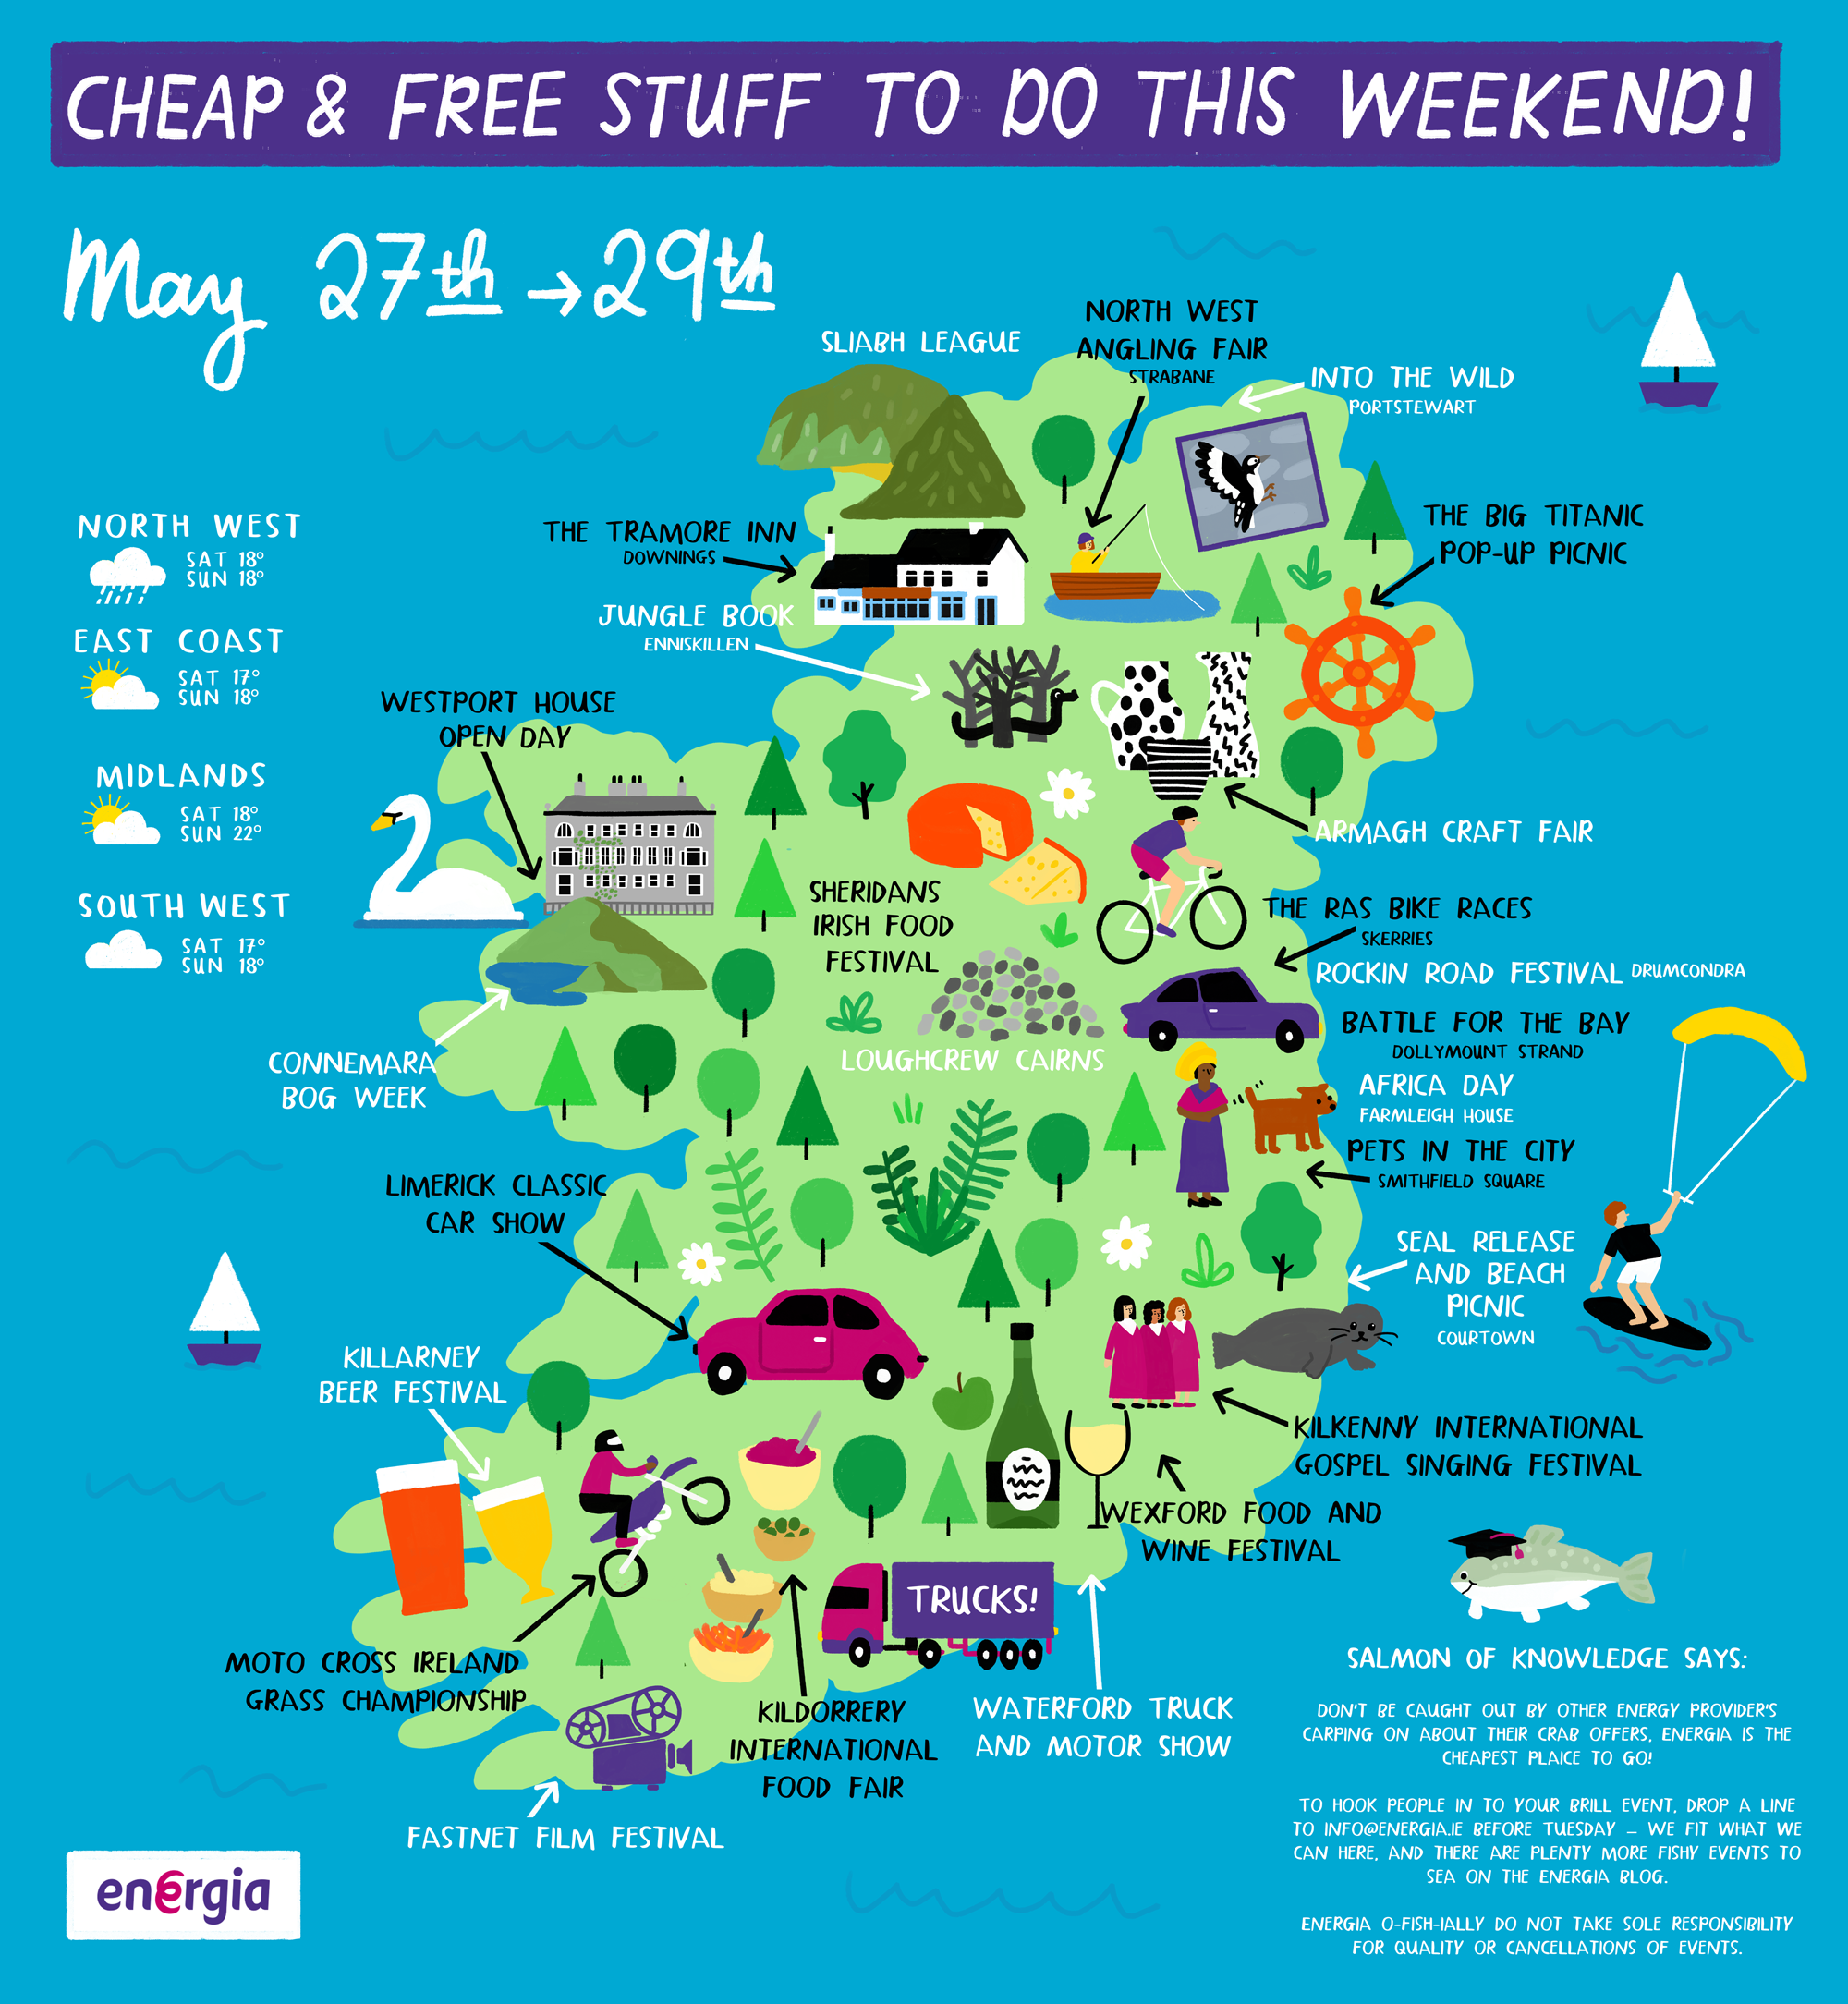 Cheap & Free stuff to do this weekend 27th - 29th May